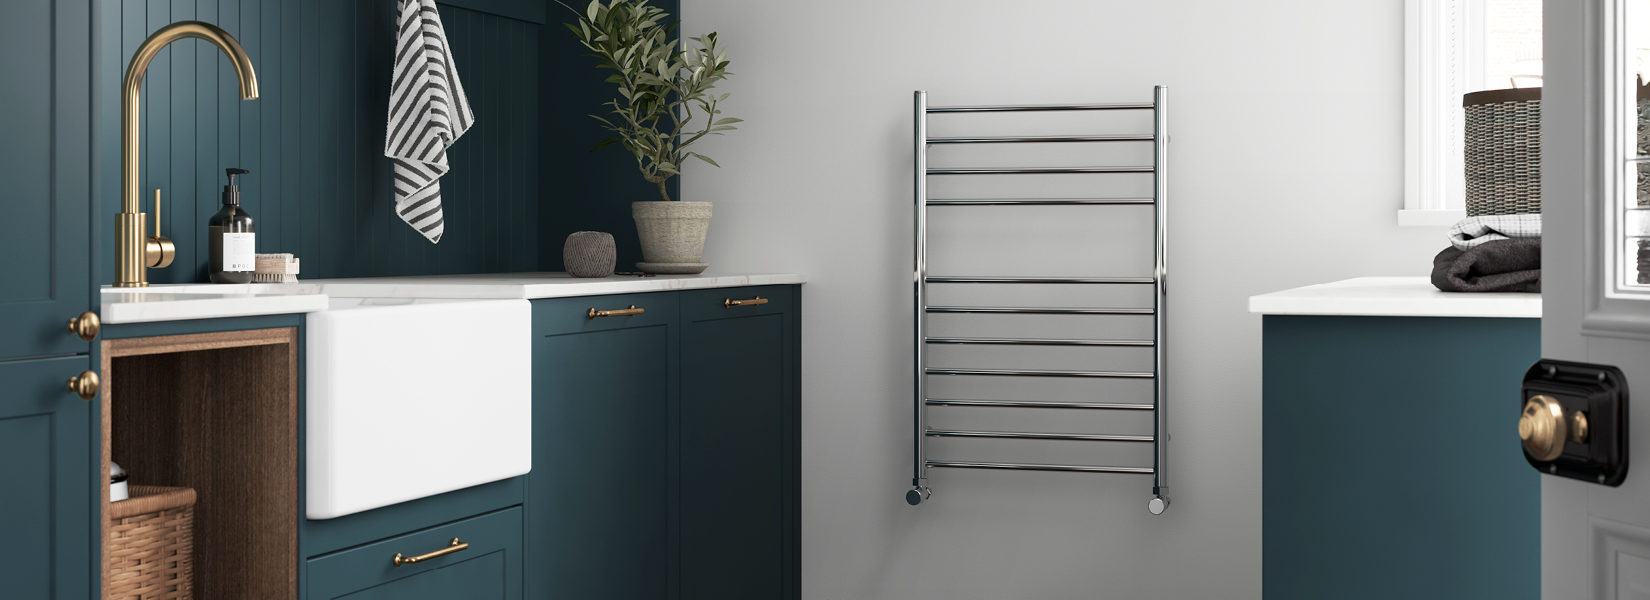 NEW - Stainless Steel Towel Rail